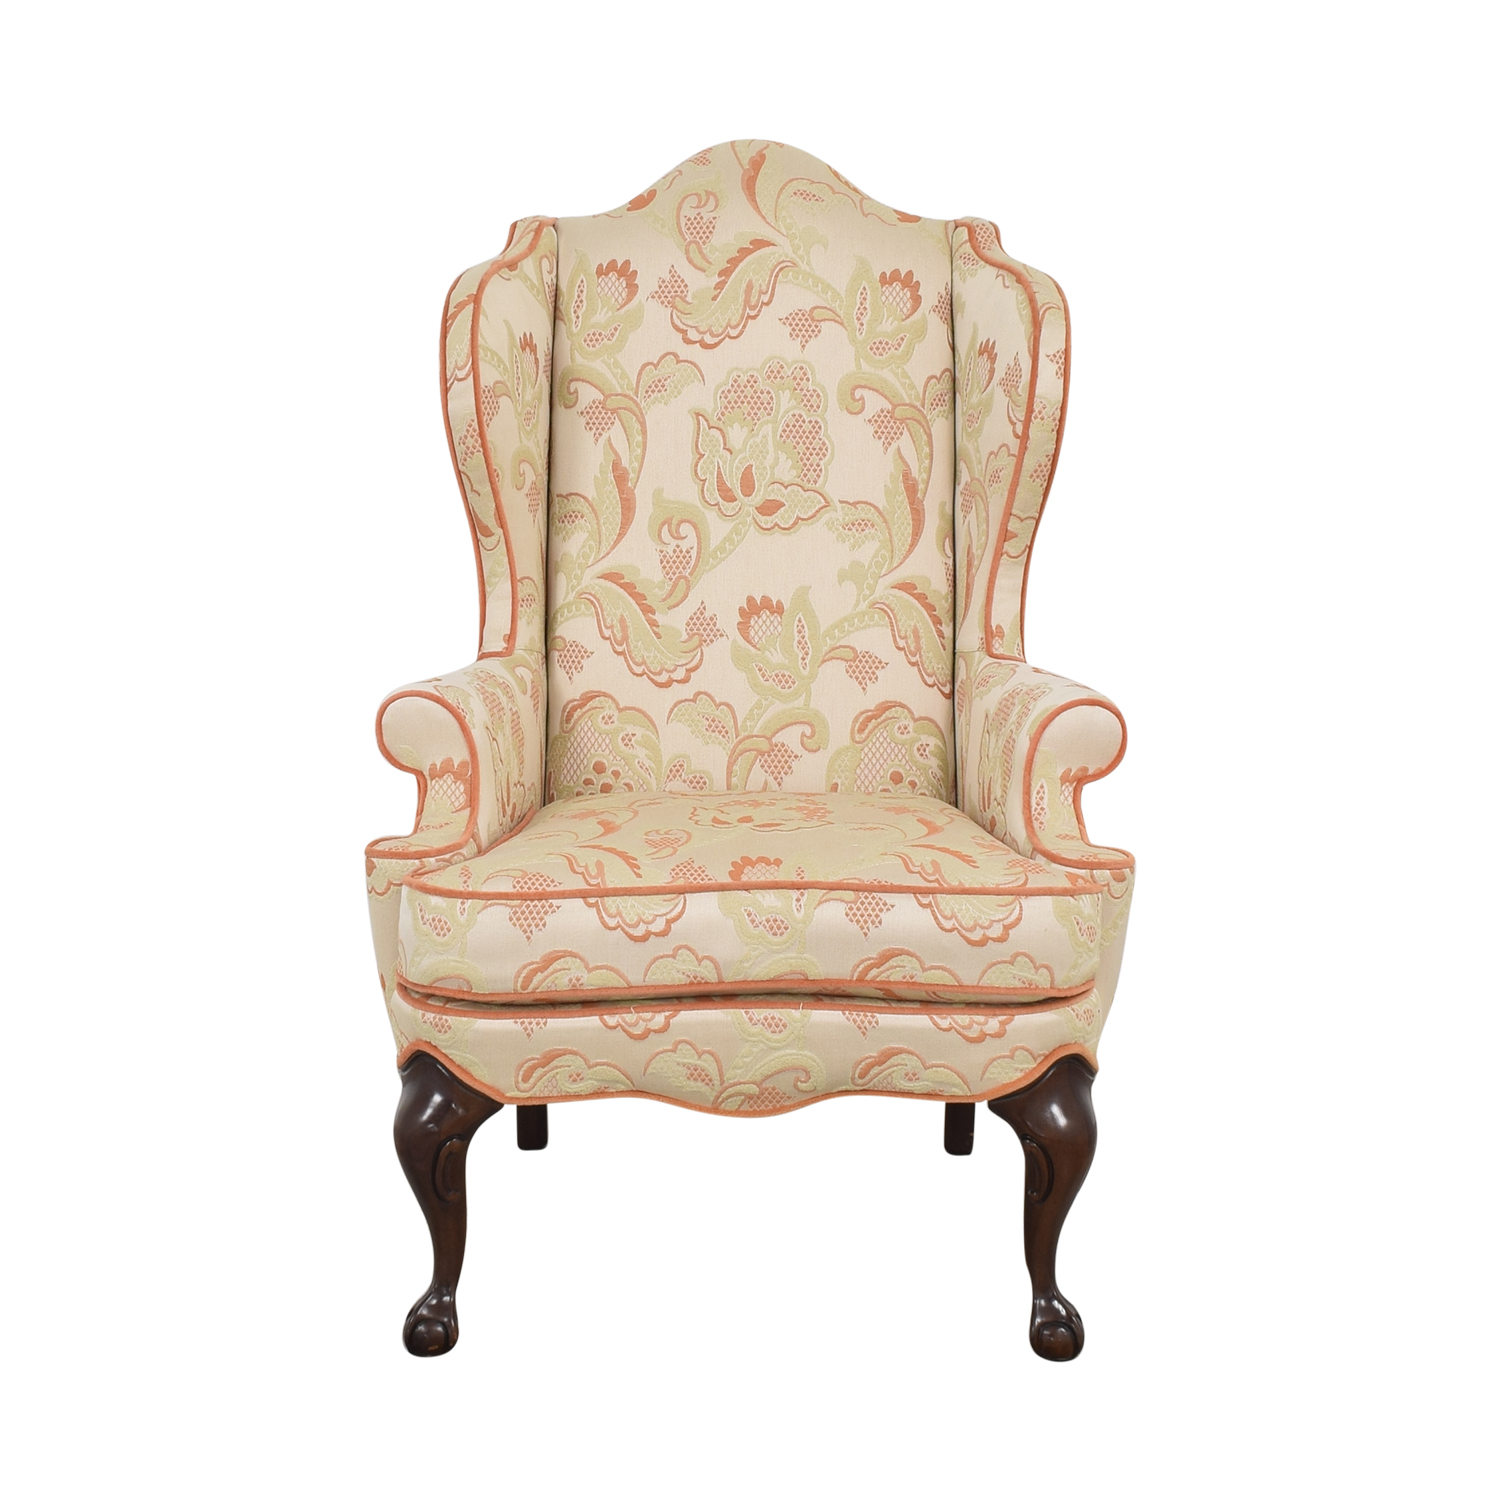 Macy's Macy's Upholstered Wingback Chair dimensions